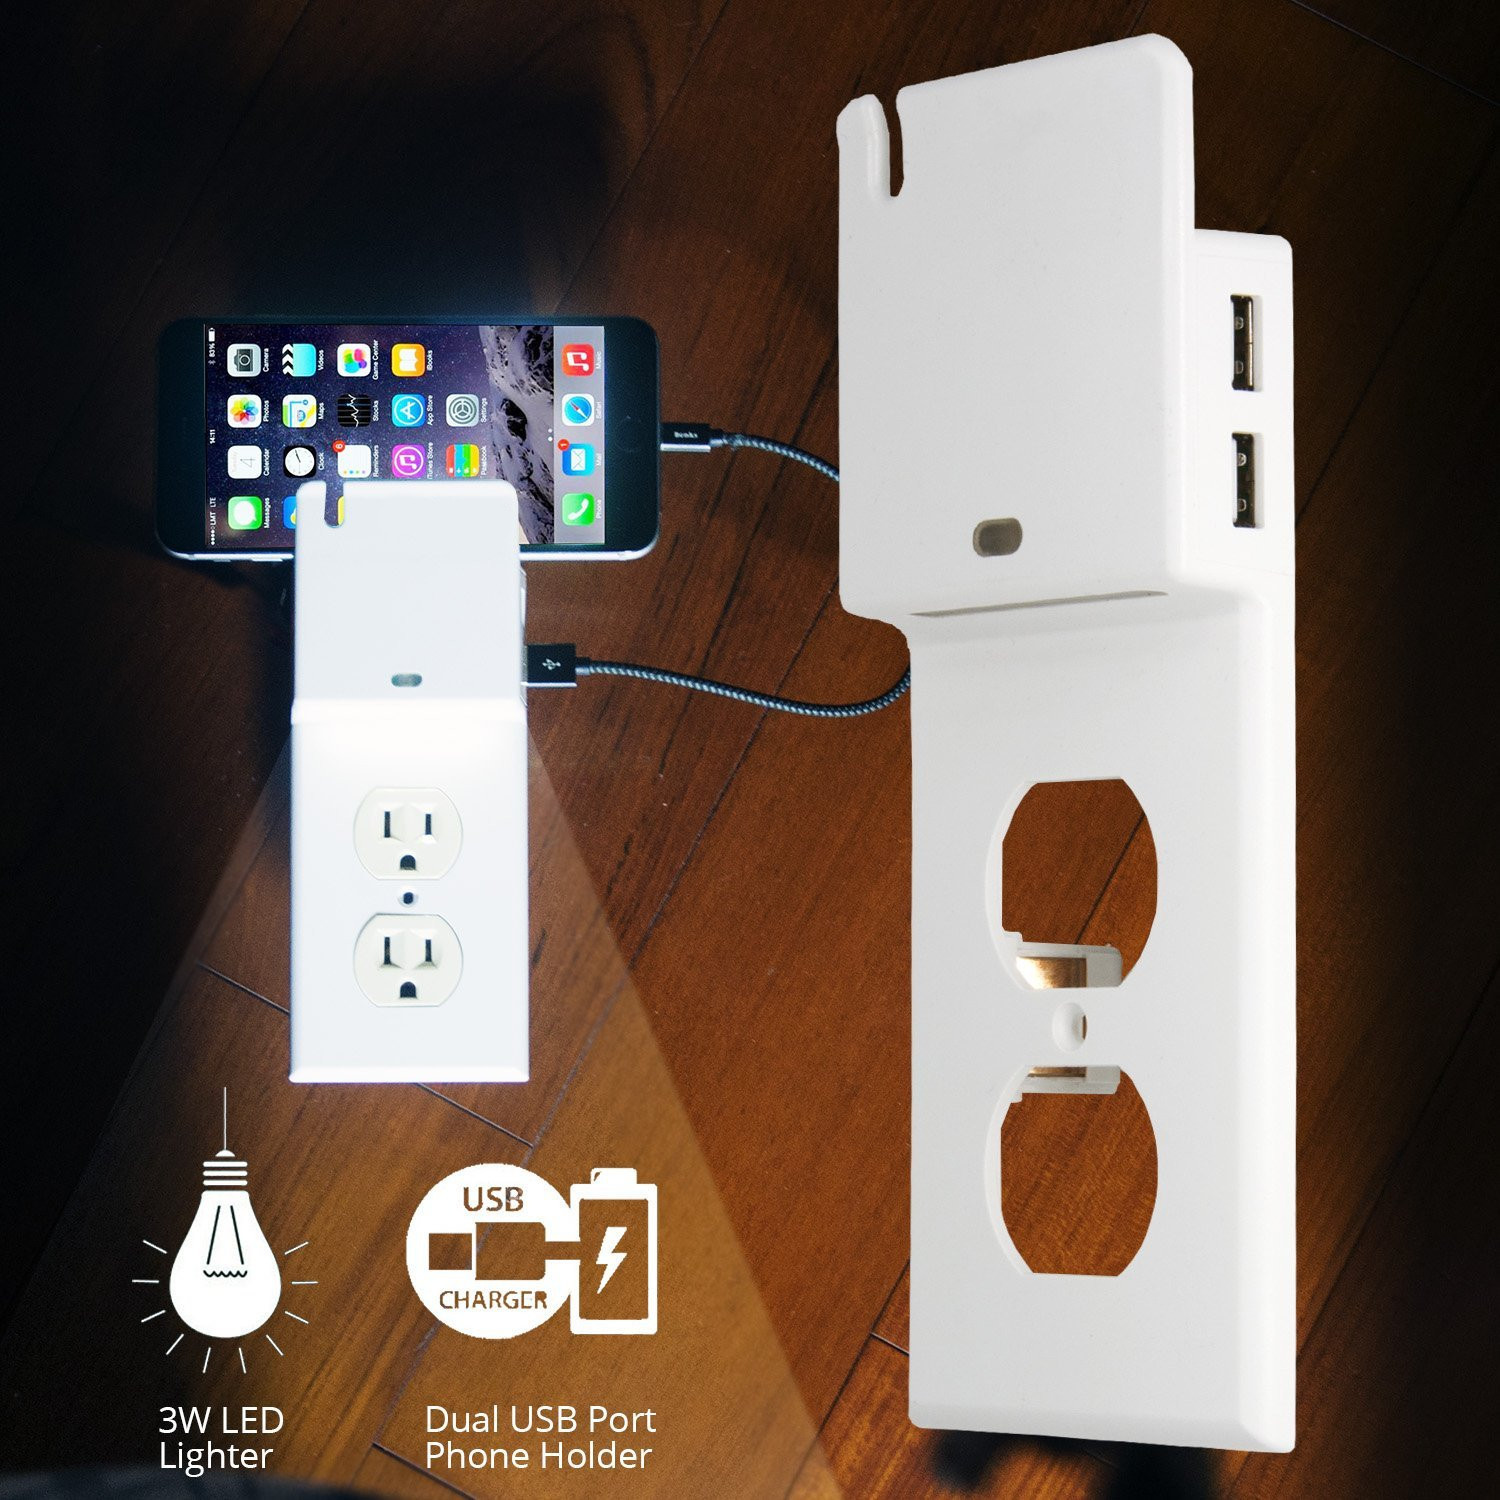 LUSTREON AC110-125V 15A Duplex Decor USB Nightlight Outlet Wall Plate Cover for